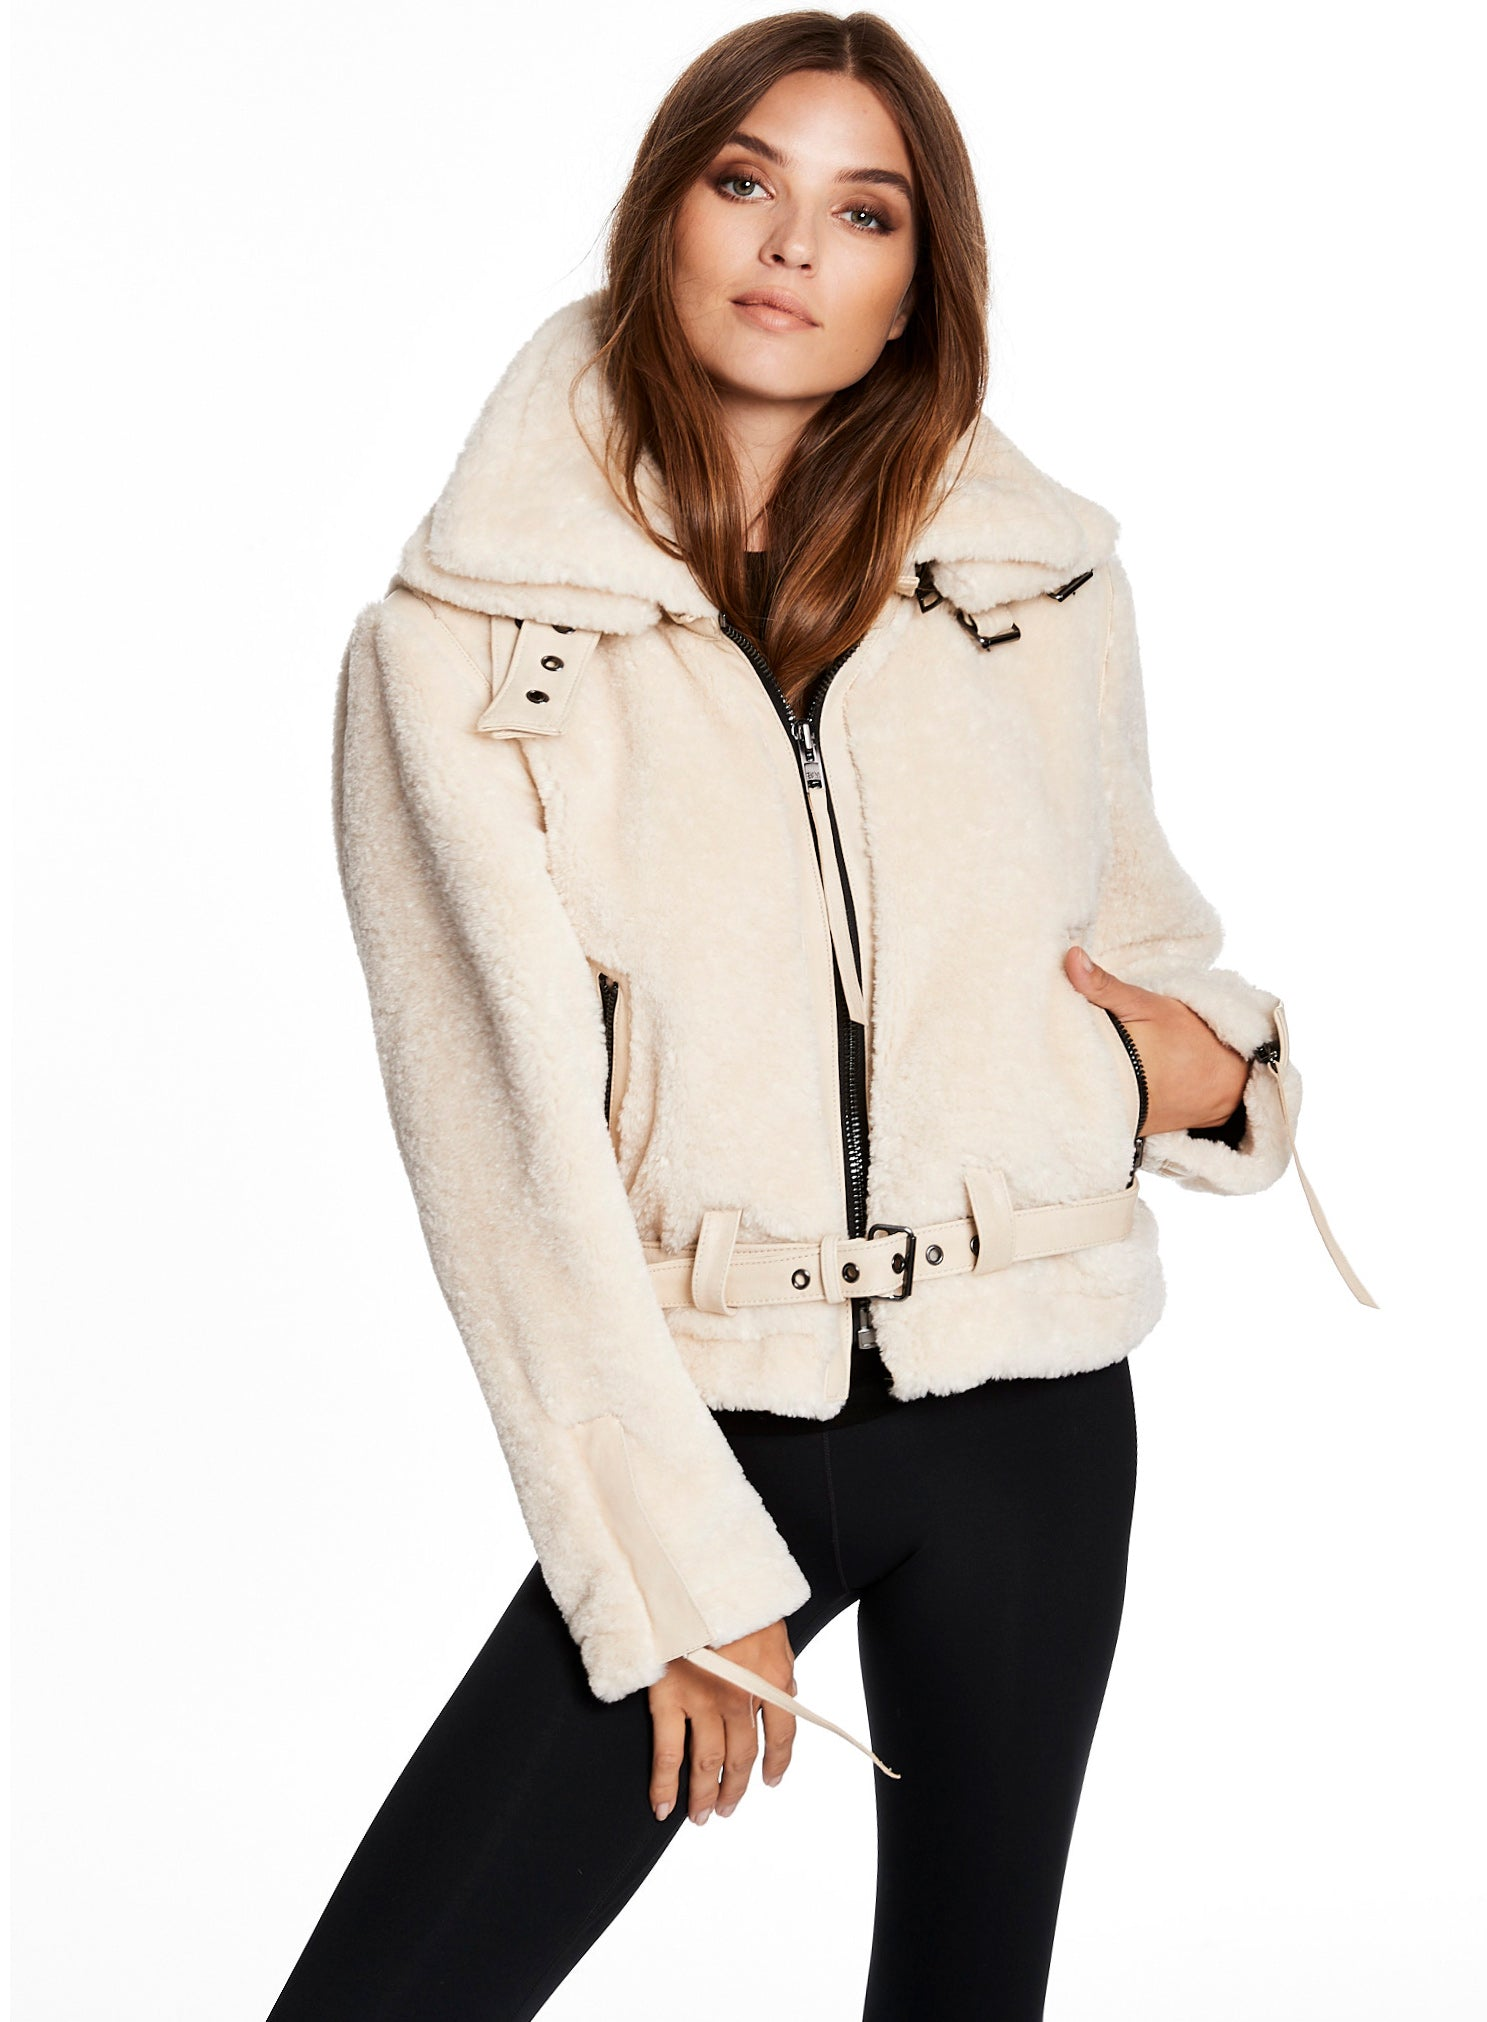 SHERPA PENELOPE SHERPA PENELOPE - SAM. New York Sam nyc jacket